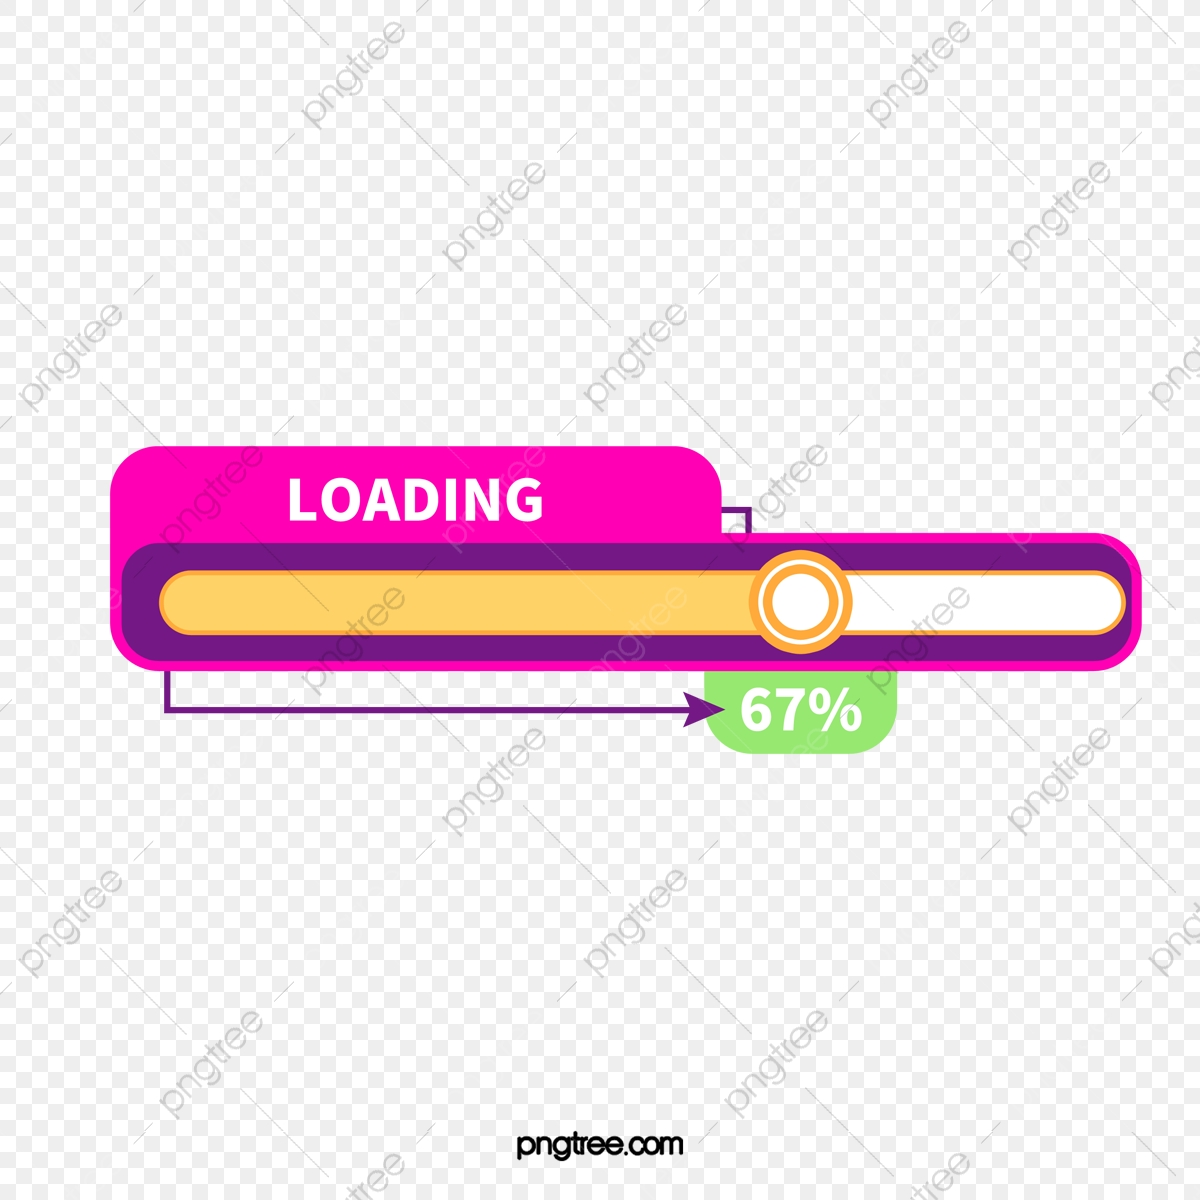 Loading Icon, Loading, Percentage, Schedule PNG Transparent.